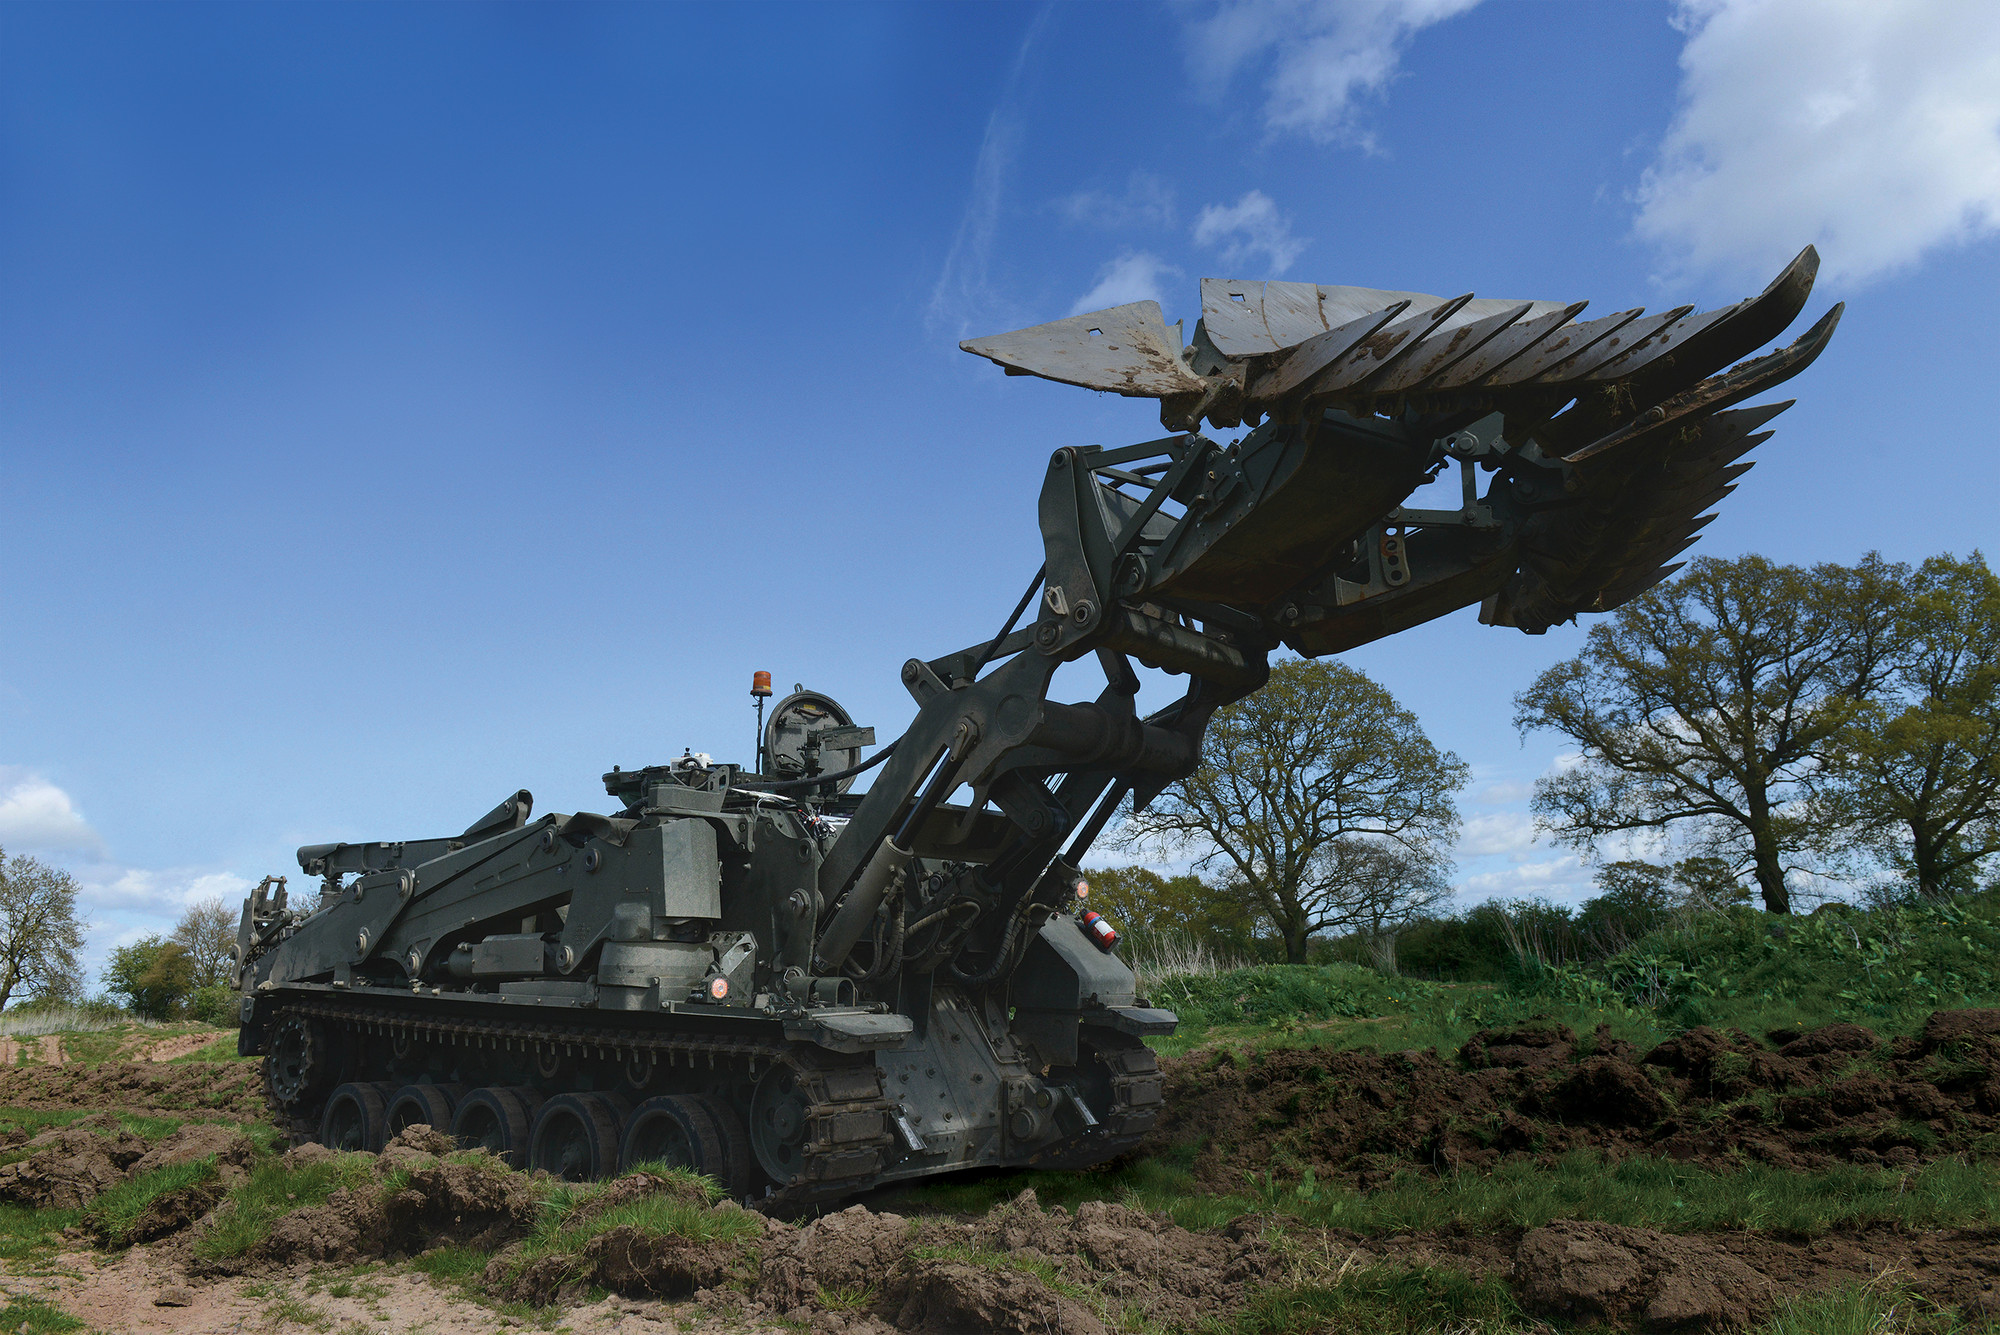 BAE Systems sells off majority stake in UK military vehicle arm to German firm